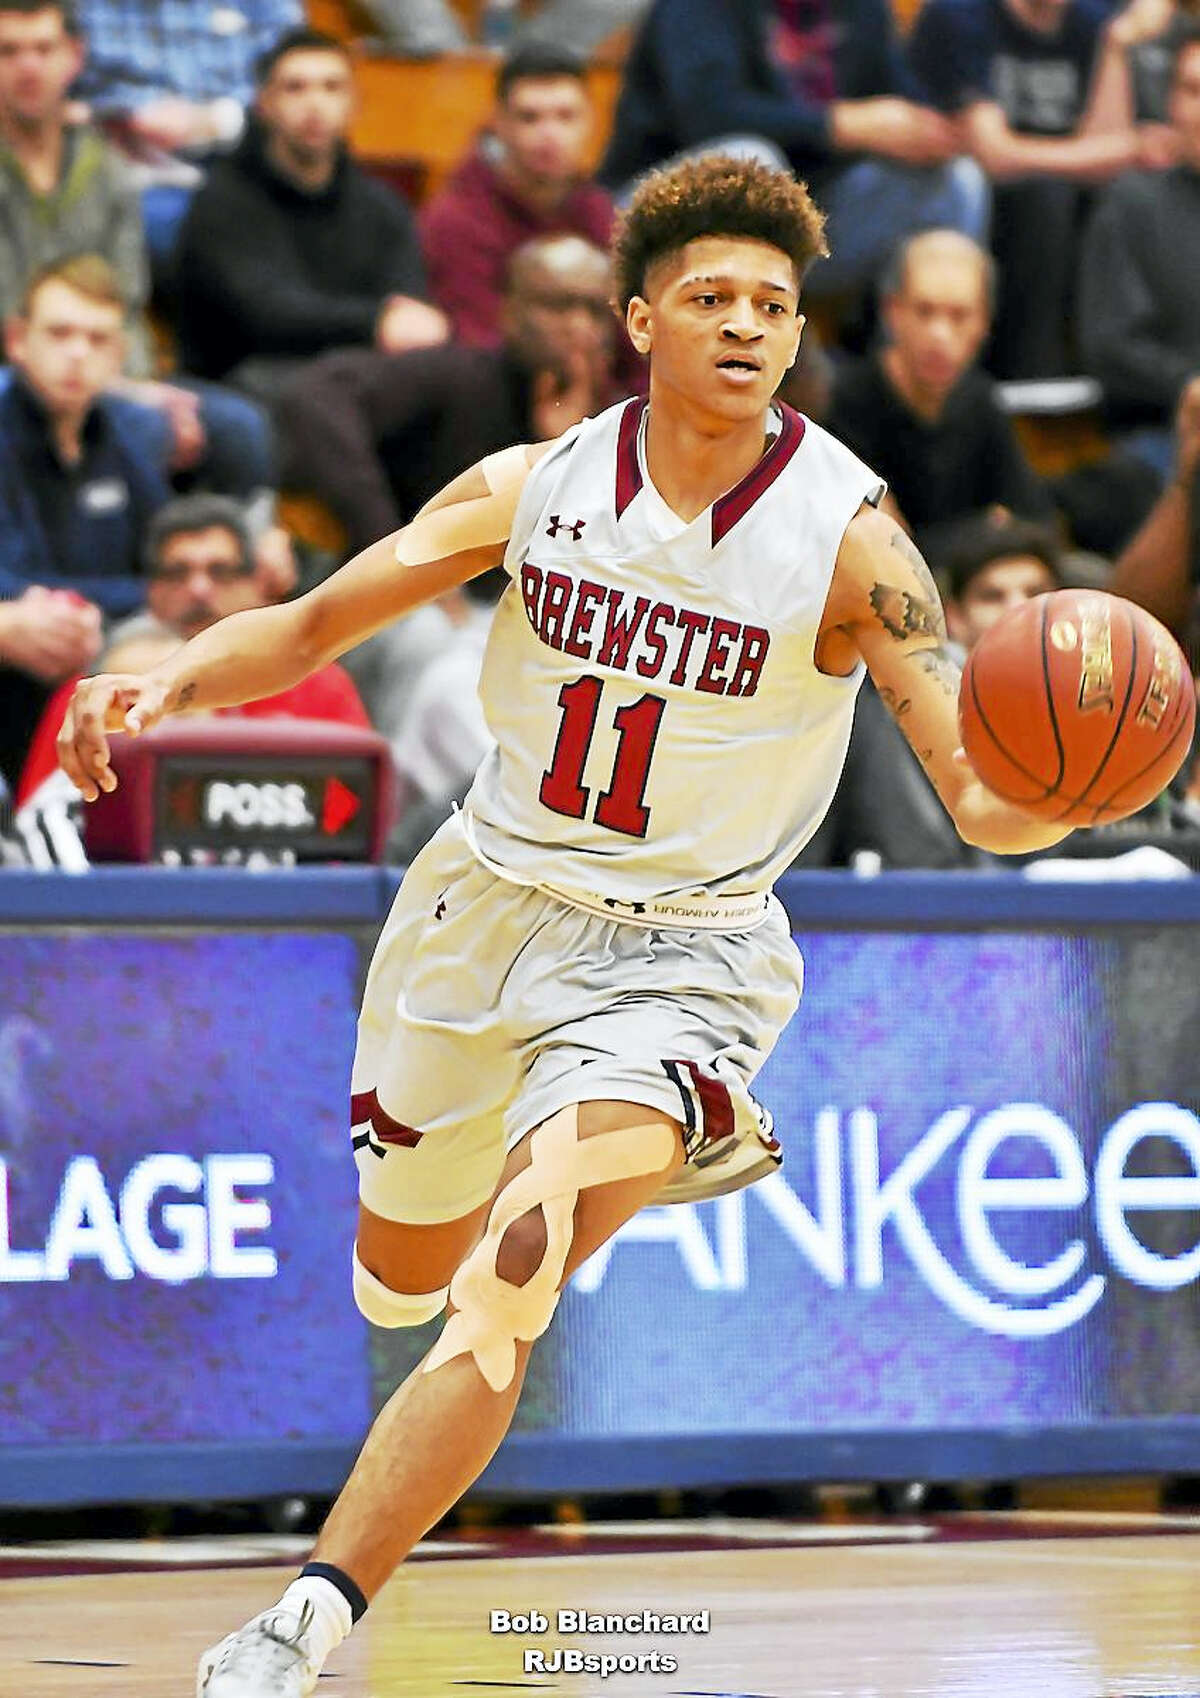 UConn commit Makai Ashton-Langford draws comparisons to current Husky Jalen Adams, but he's his own player.